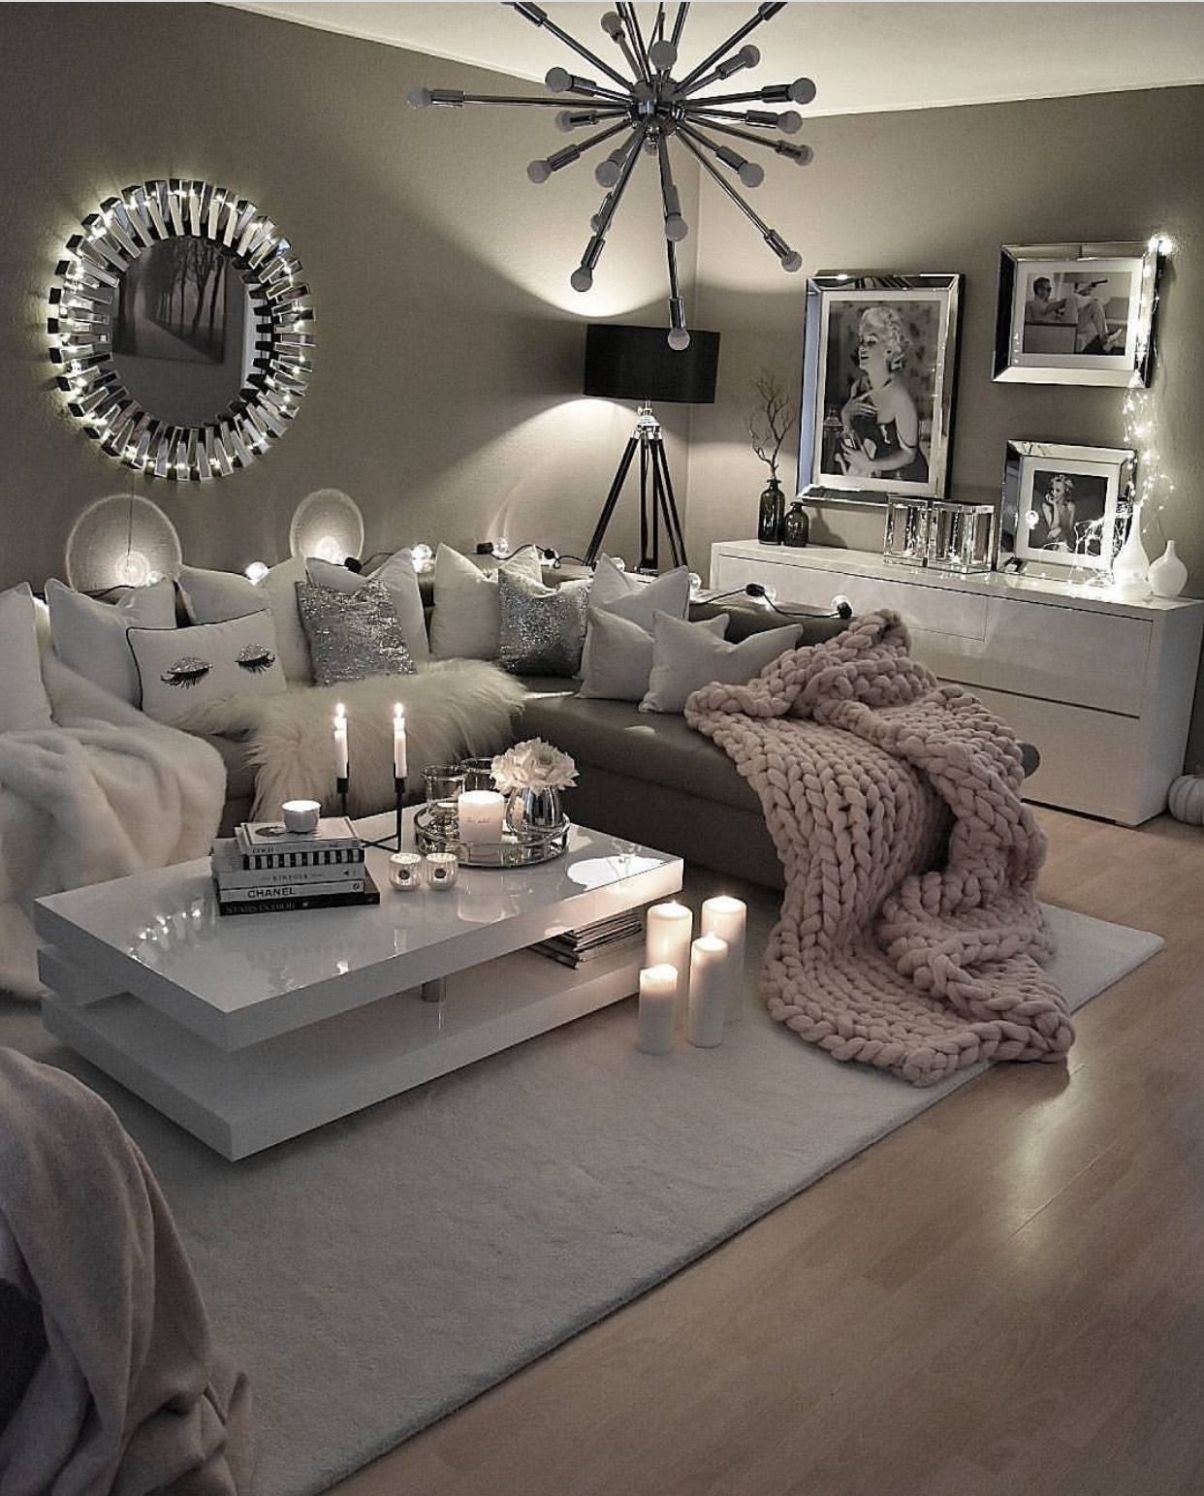 Pin by Talya Atkinson on remodel | Living room designs, Cozy ...